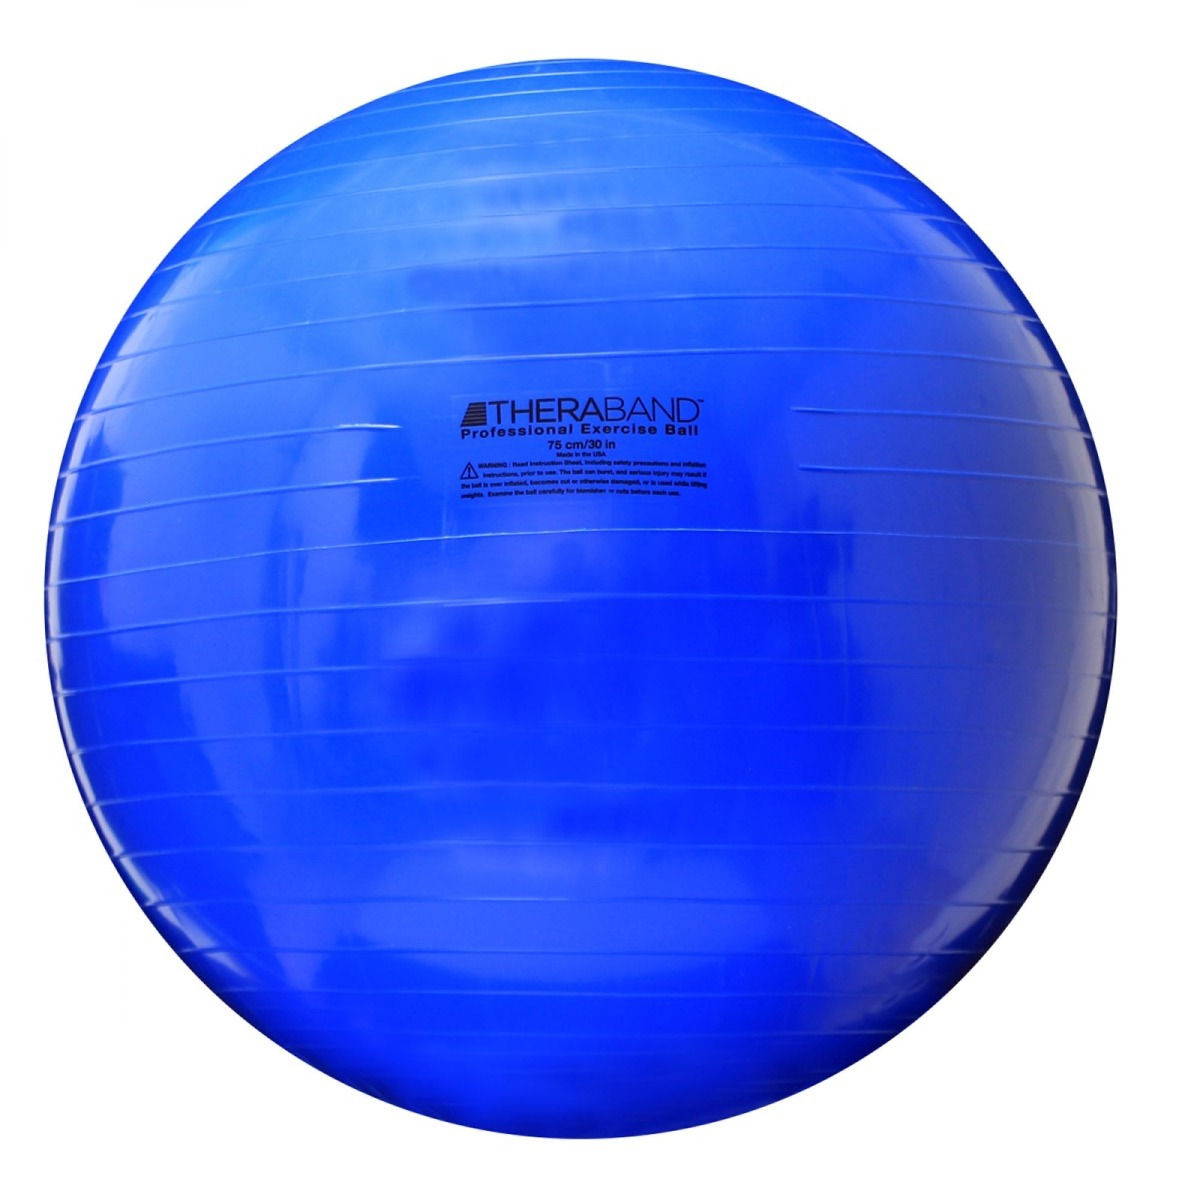 TheraBand Standard Exercise Ball, 75 cm, Blue, Retail Pack